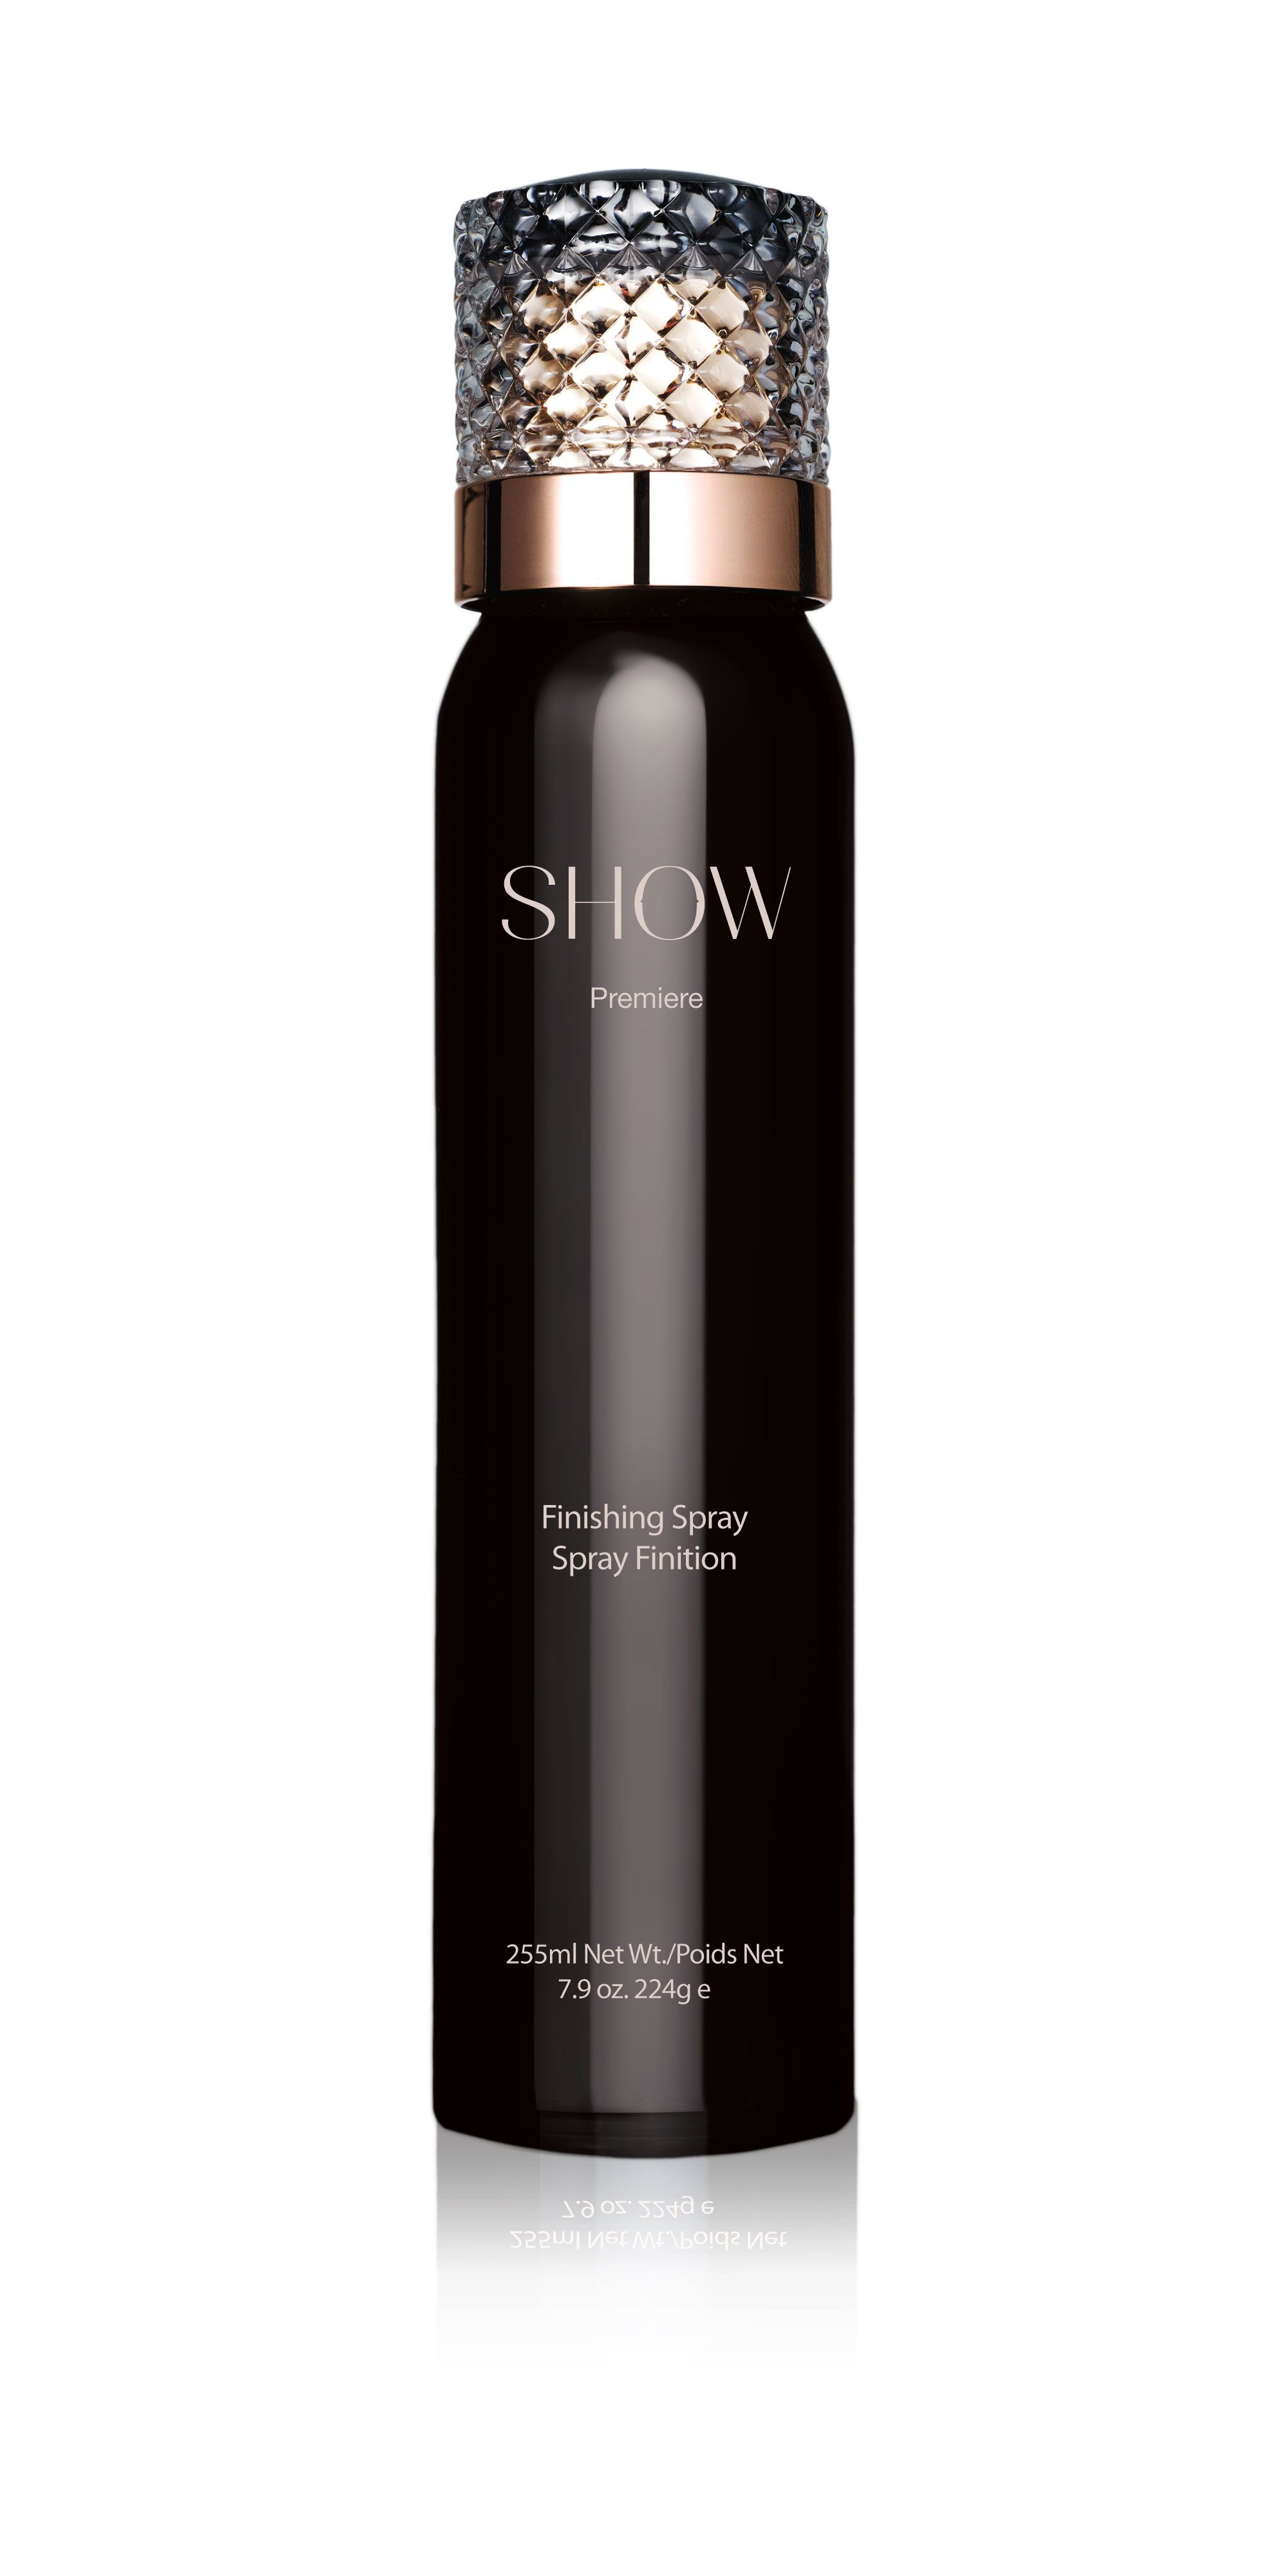 Show Show Premiere Finishing Spray